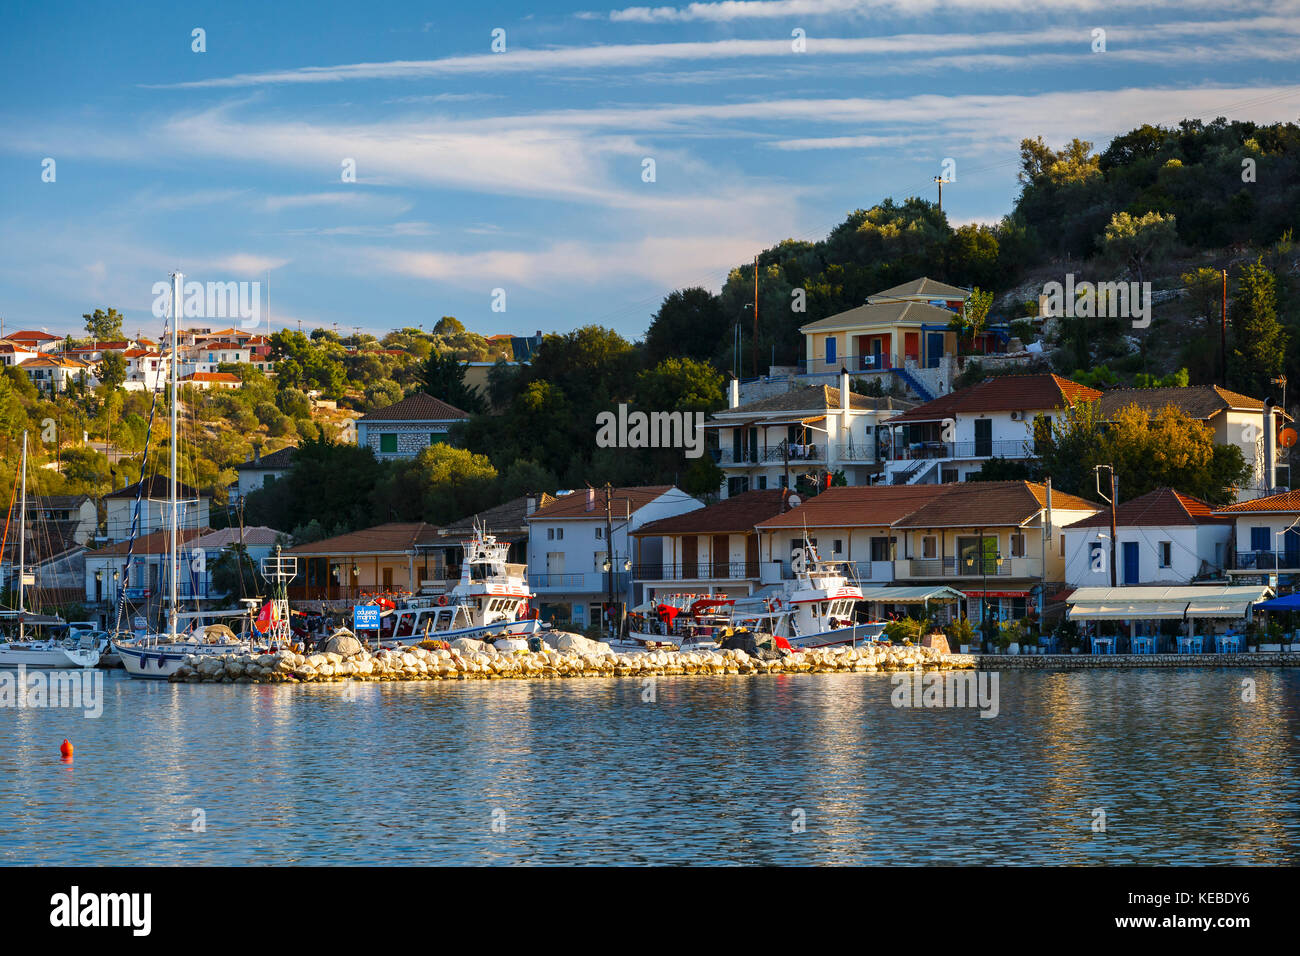 View of the Vathy harbur on Meganisi island, Greece. - Stock Image